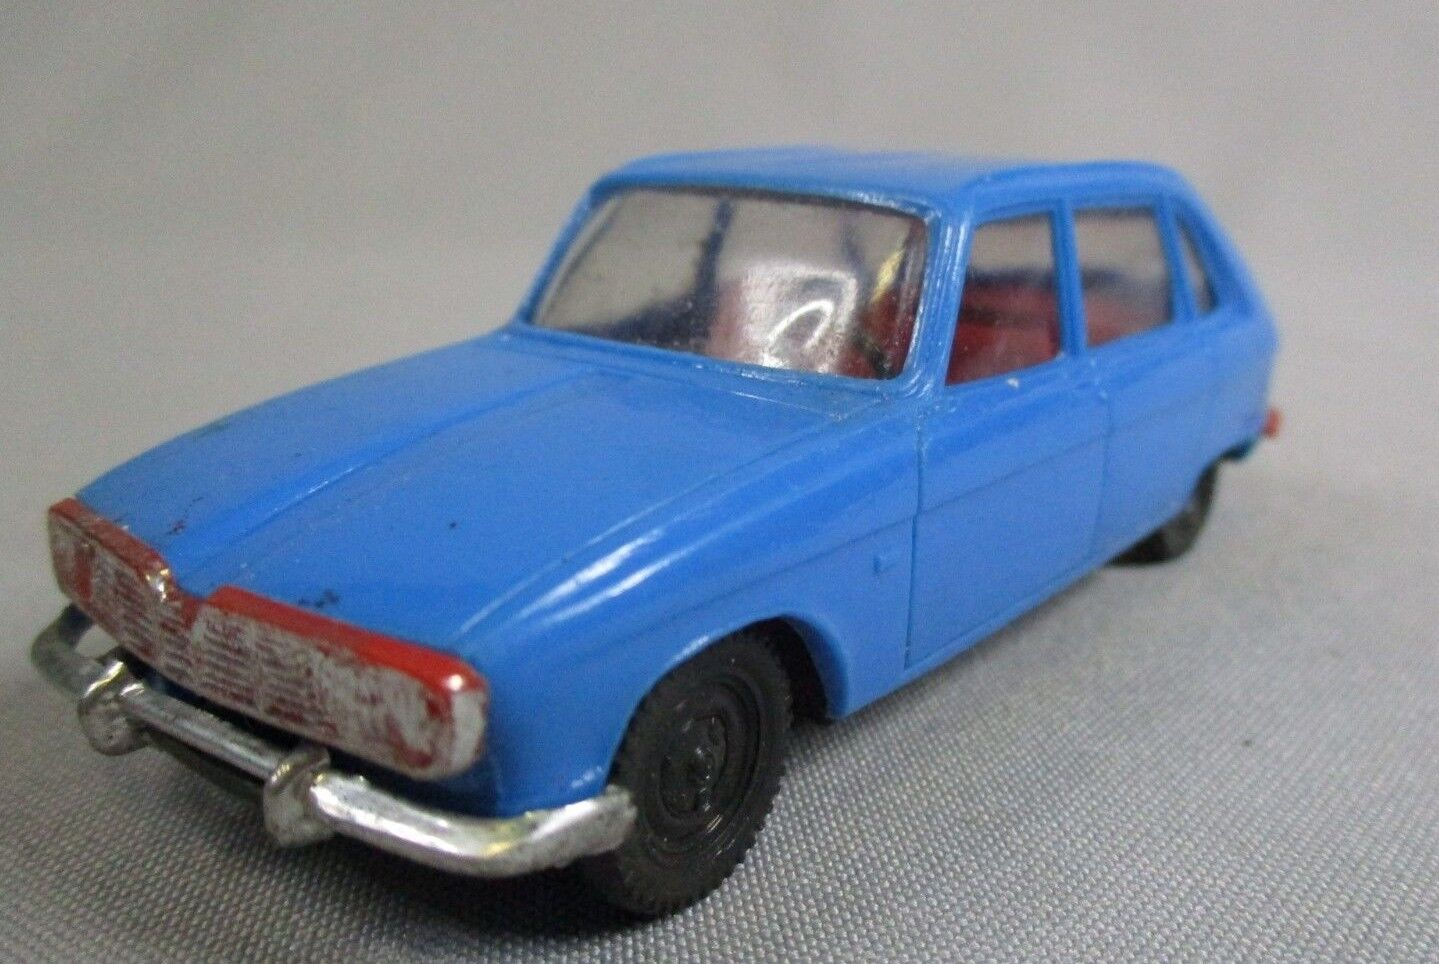 AI148 INJECTAPLASTIC RENAULT 16 R16 blueE 1 43